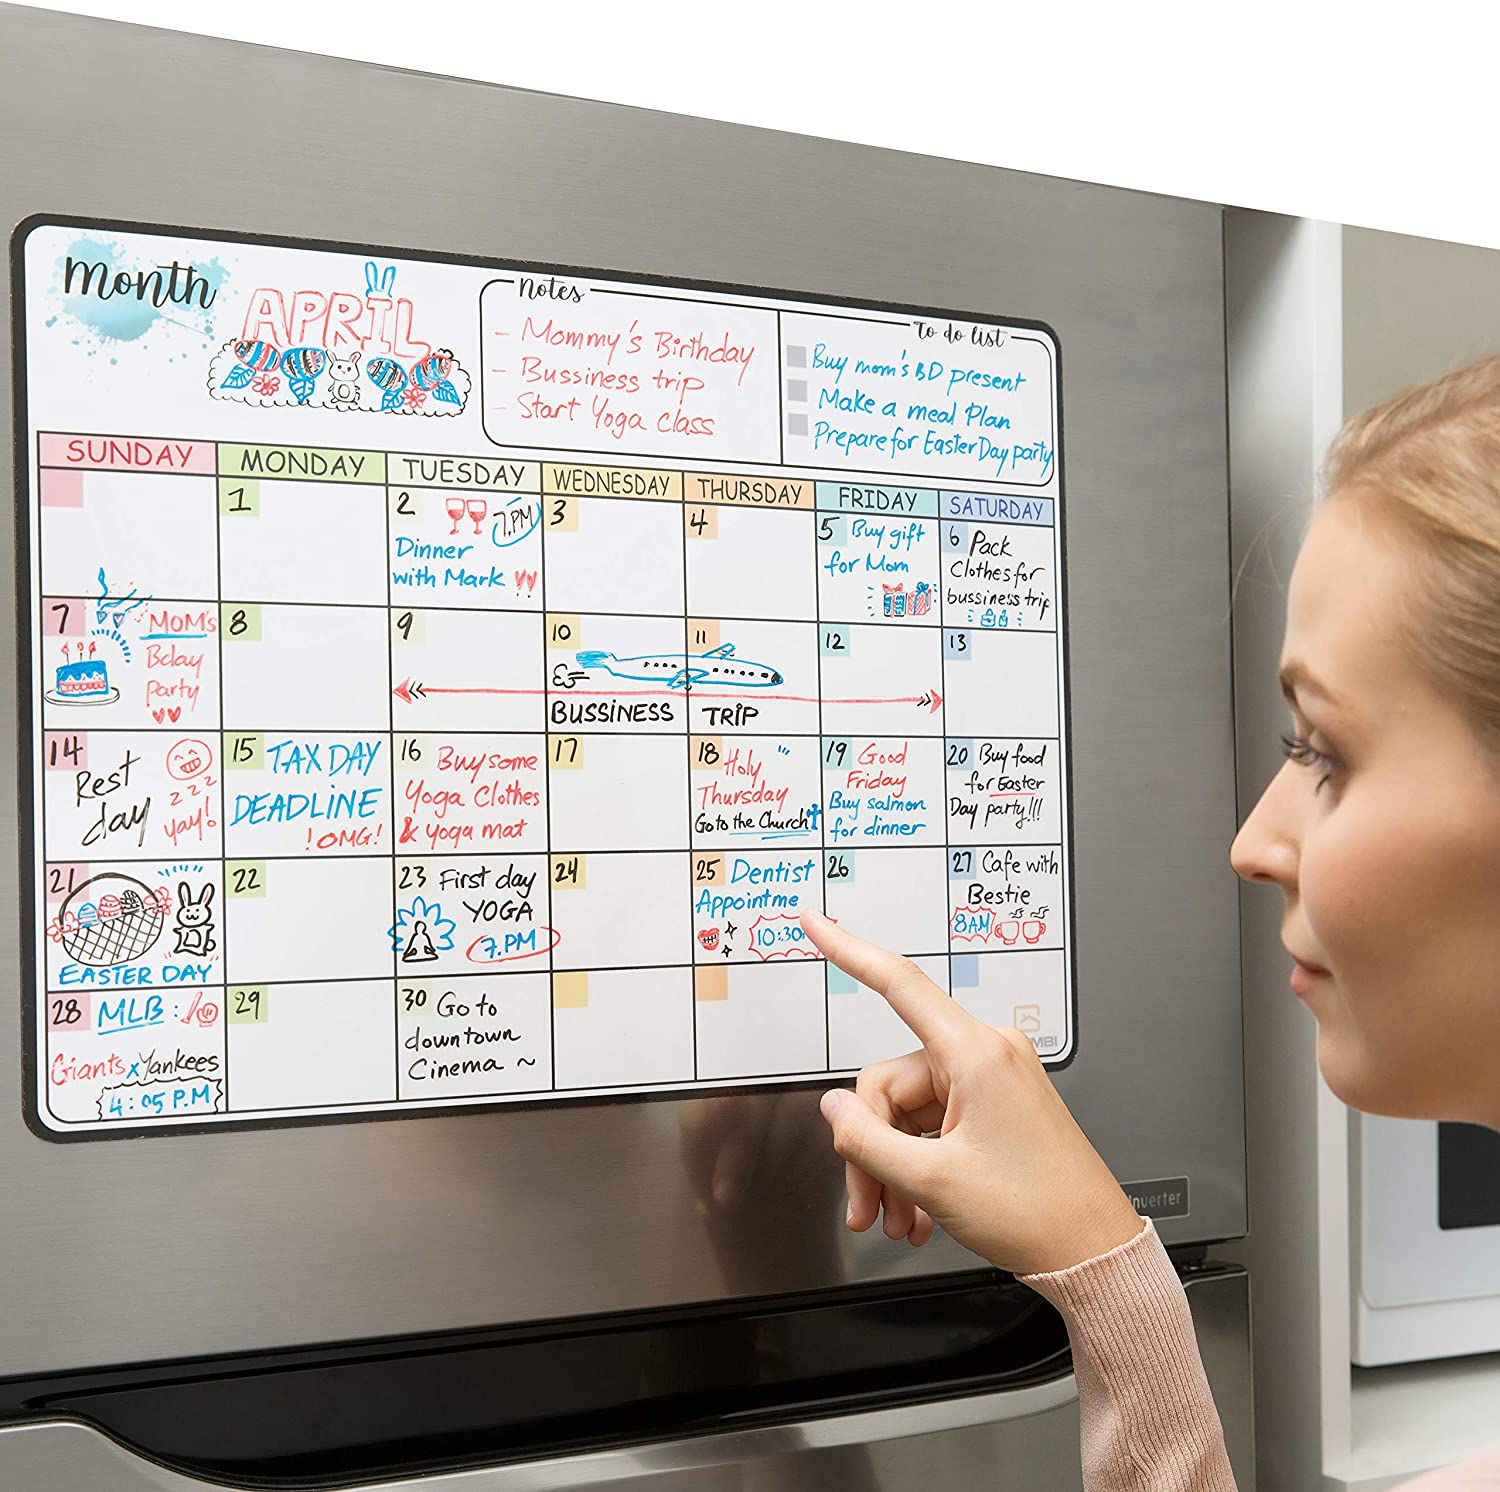 Goombi Magnetic Dry Erase Calendar for Refrigerator - 17x12 inches - Large Magnetic Whiteboard Calendar Organizer Set - Stain Resistant Technology - 4 Fine Tip Markers & Eraser with Magnets Included